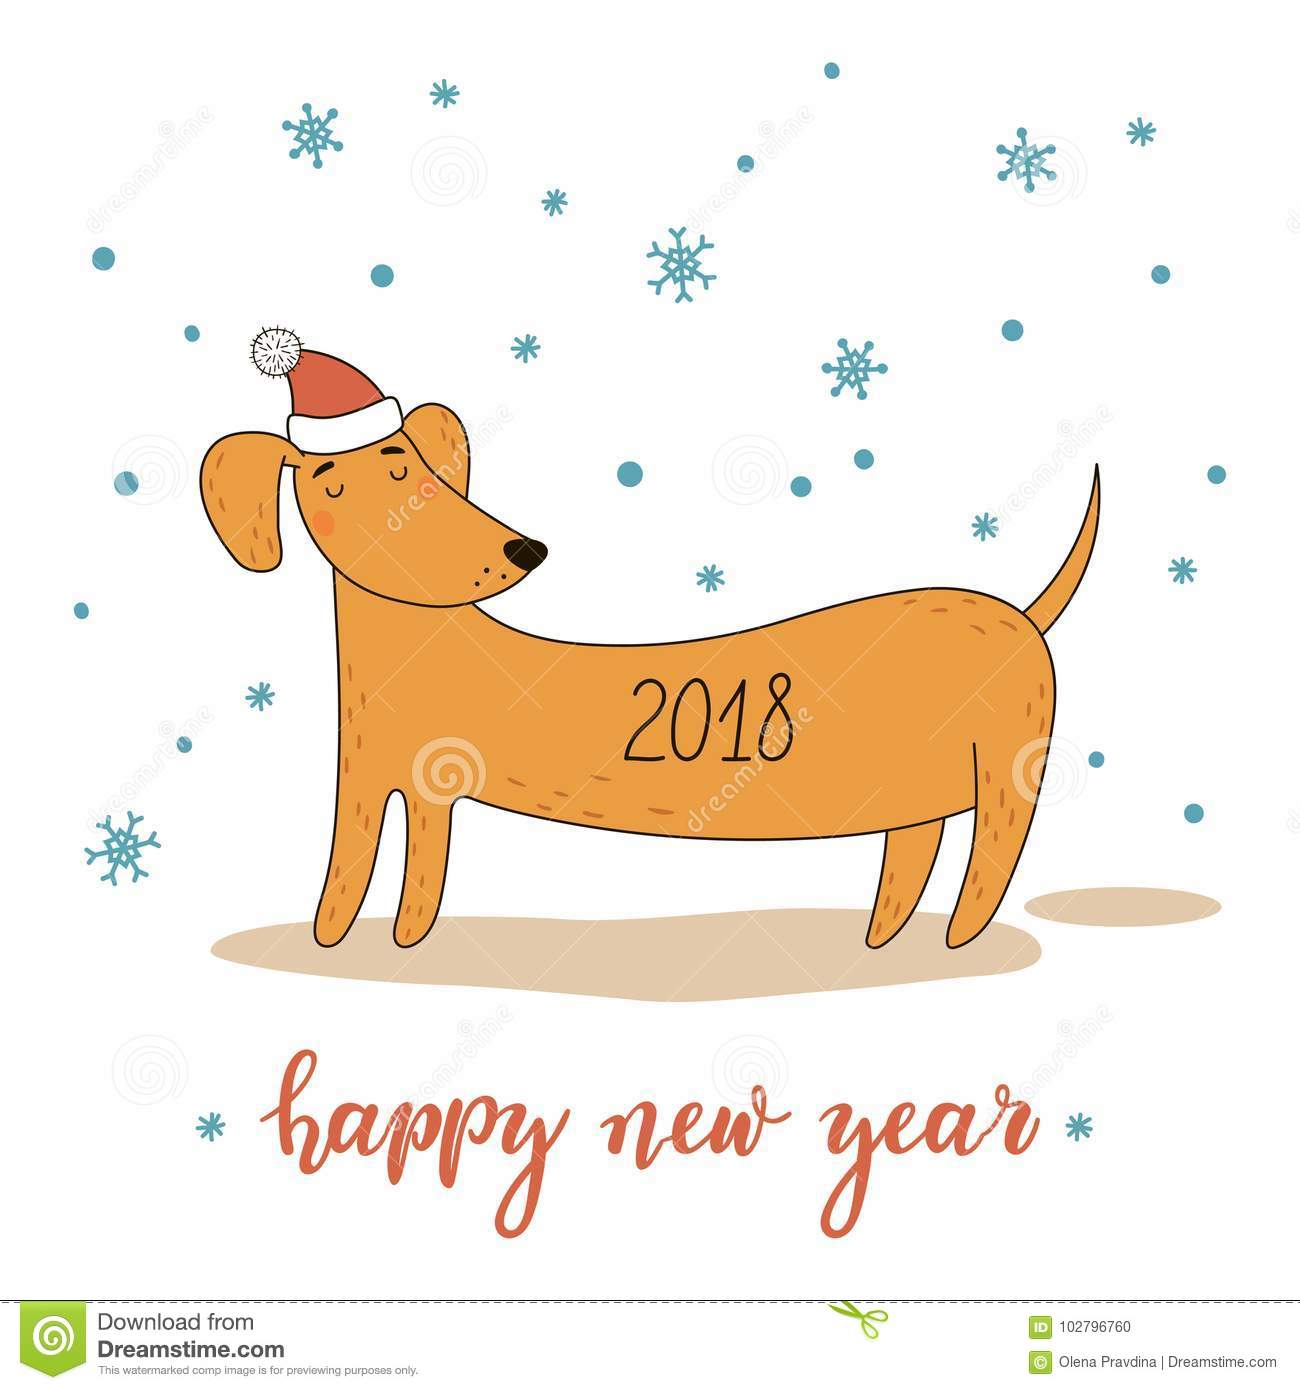 Christmas and new year greeting card with cute cartoon dachshund download christmas and new year greeting card with cute cartoon dachshund vector illustration stock m4hsunfo